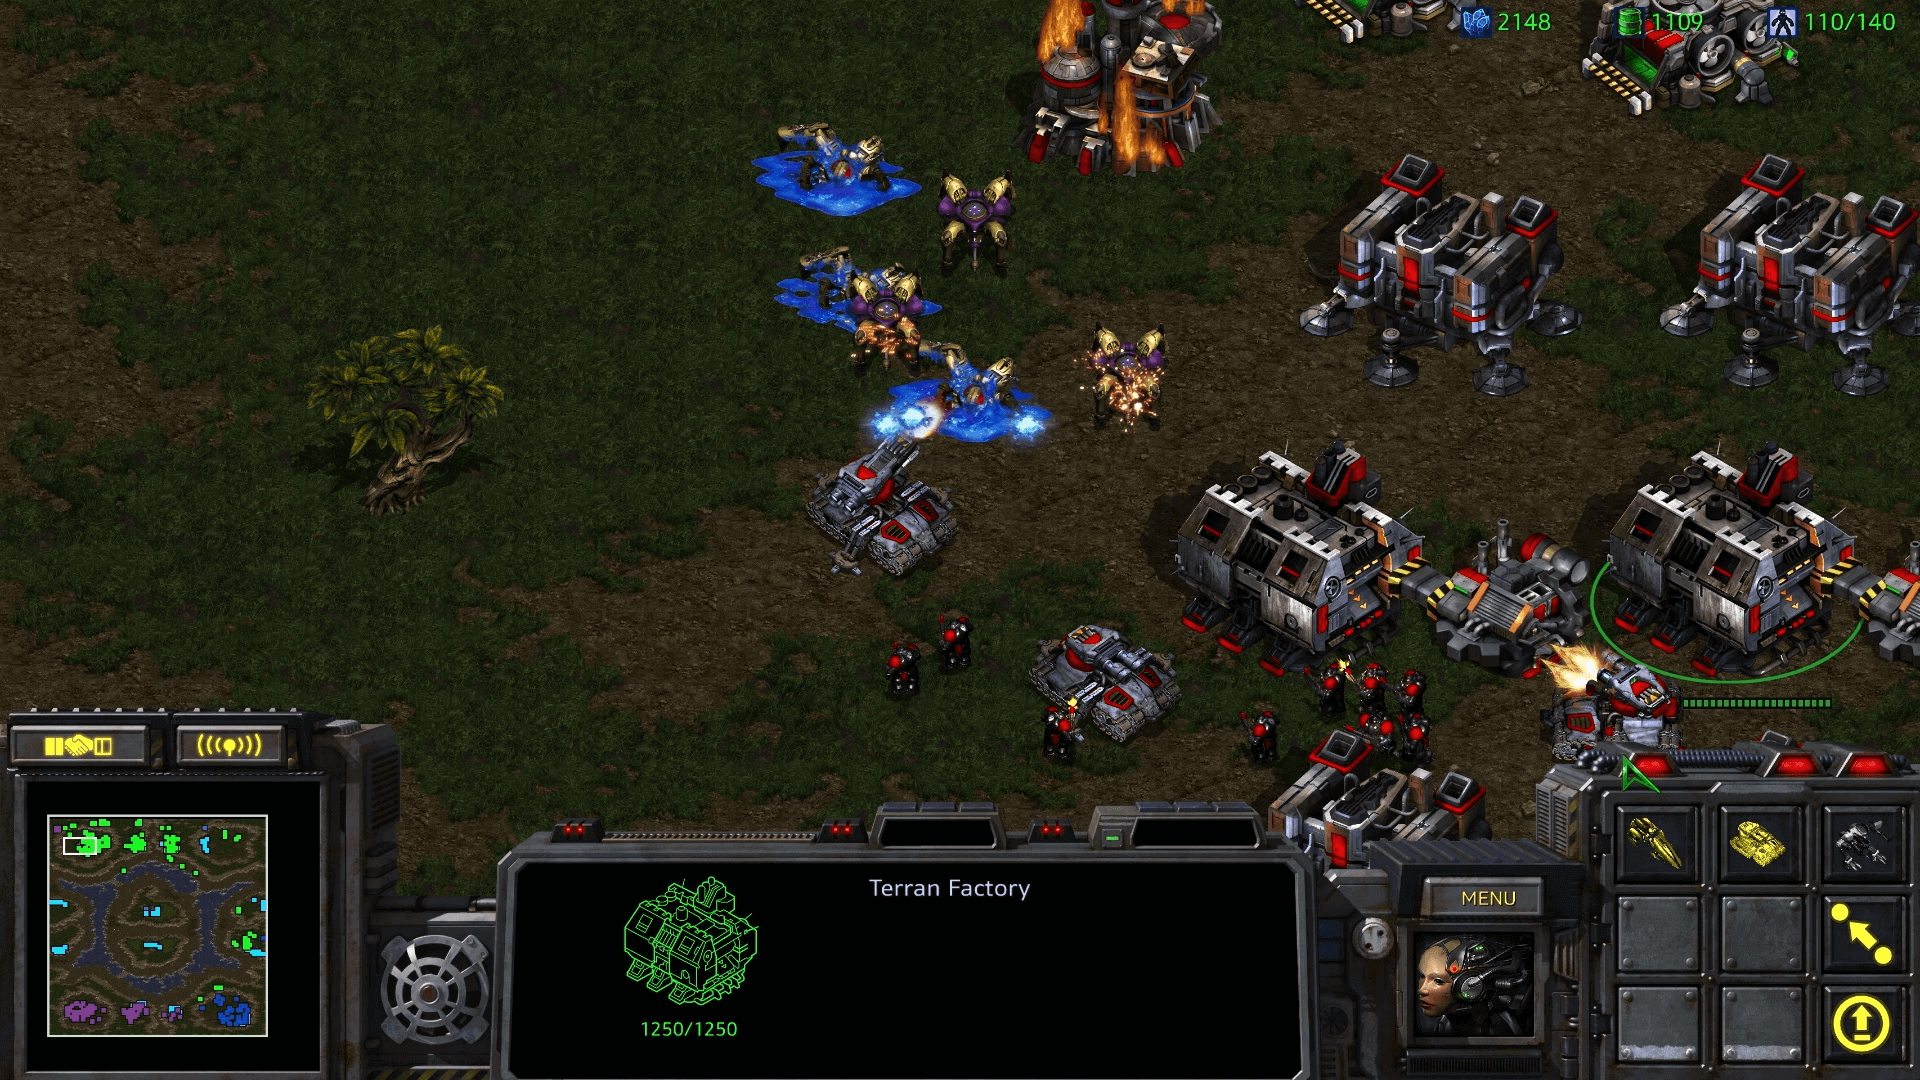 StarCraft: Remastered arrives August 14 for $15 - TechSpot